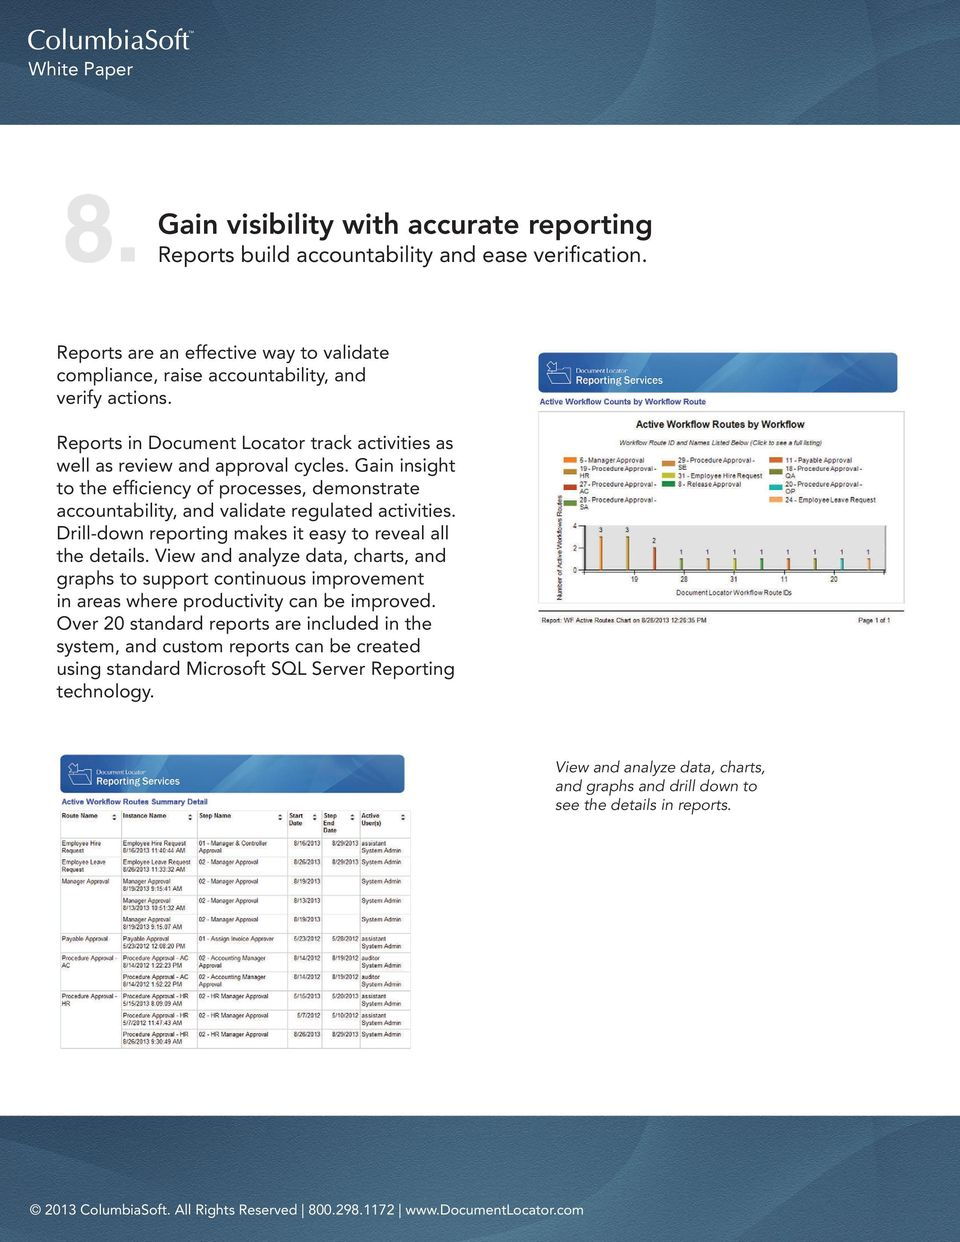 Drill-down reporting makes it easy to reveal all the details. View and analyze data, charts, and graphs to support continuous improvement in areas where productivity can be improved.